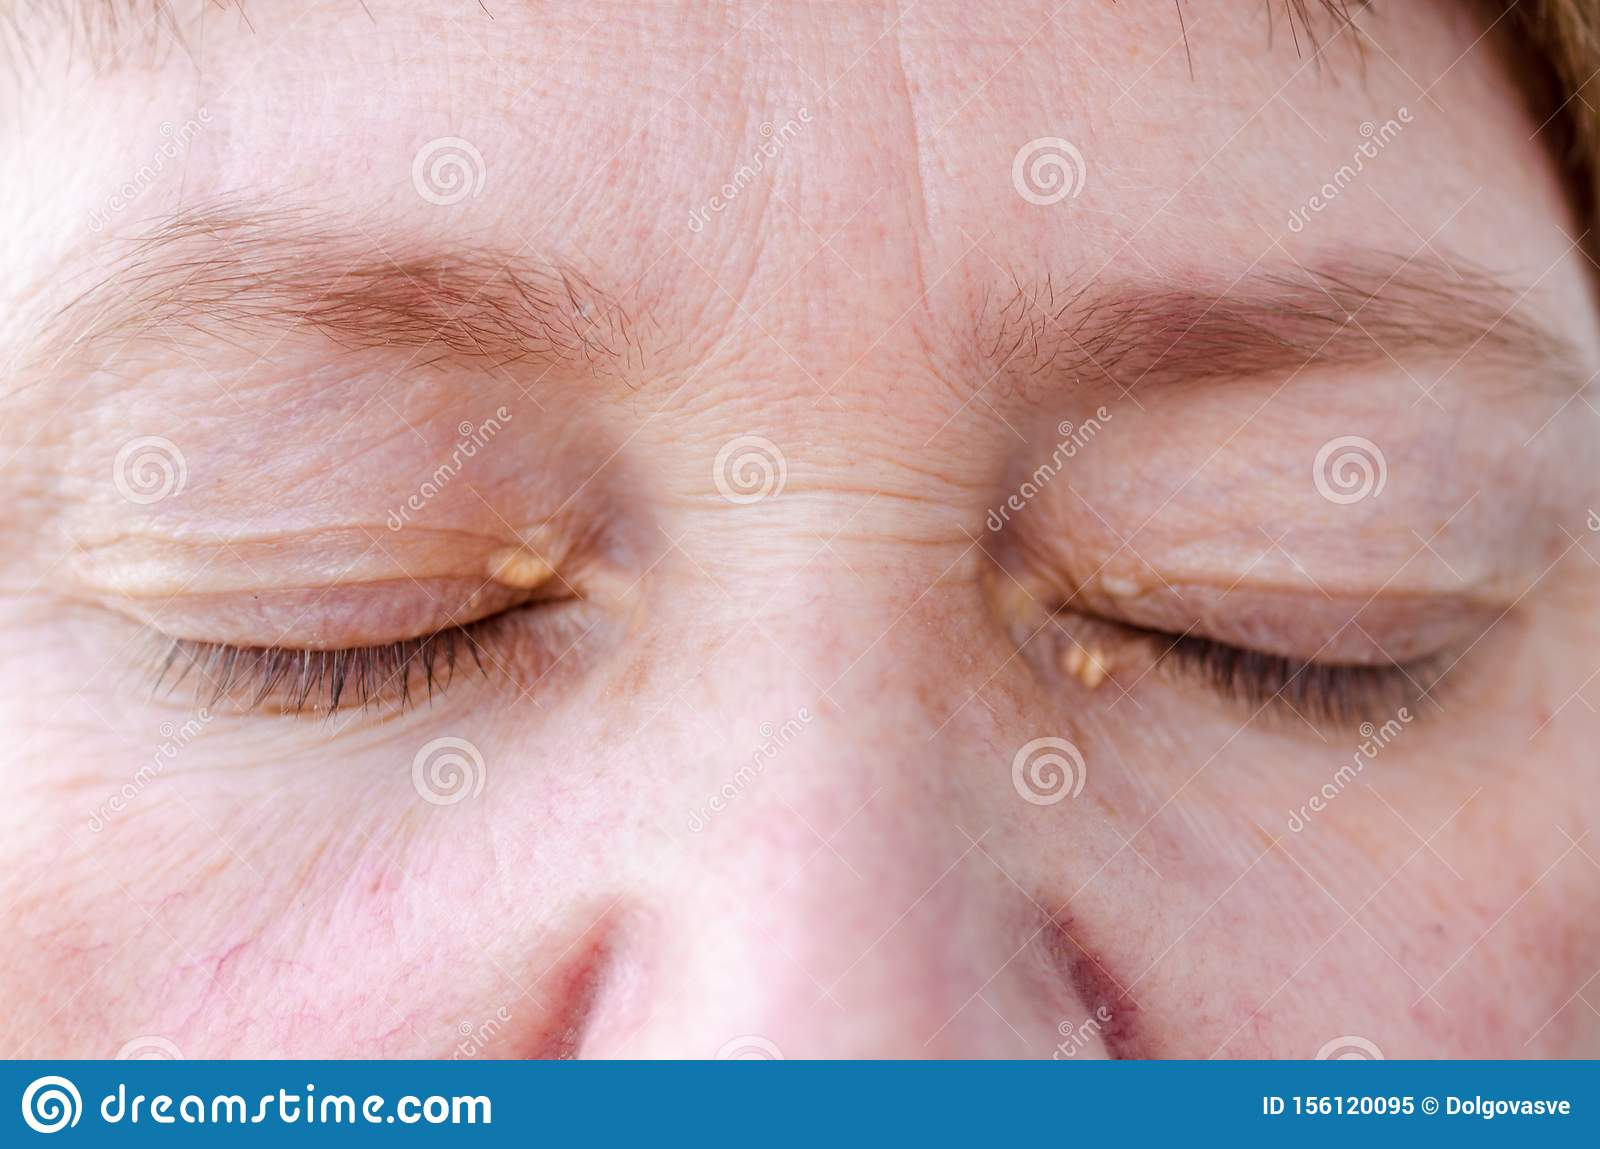 Womens eyelids with small growths due to disorders of lipid metabolism. Medical and cosmetology problem